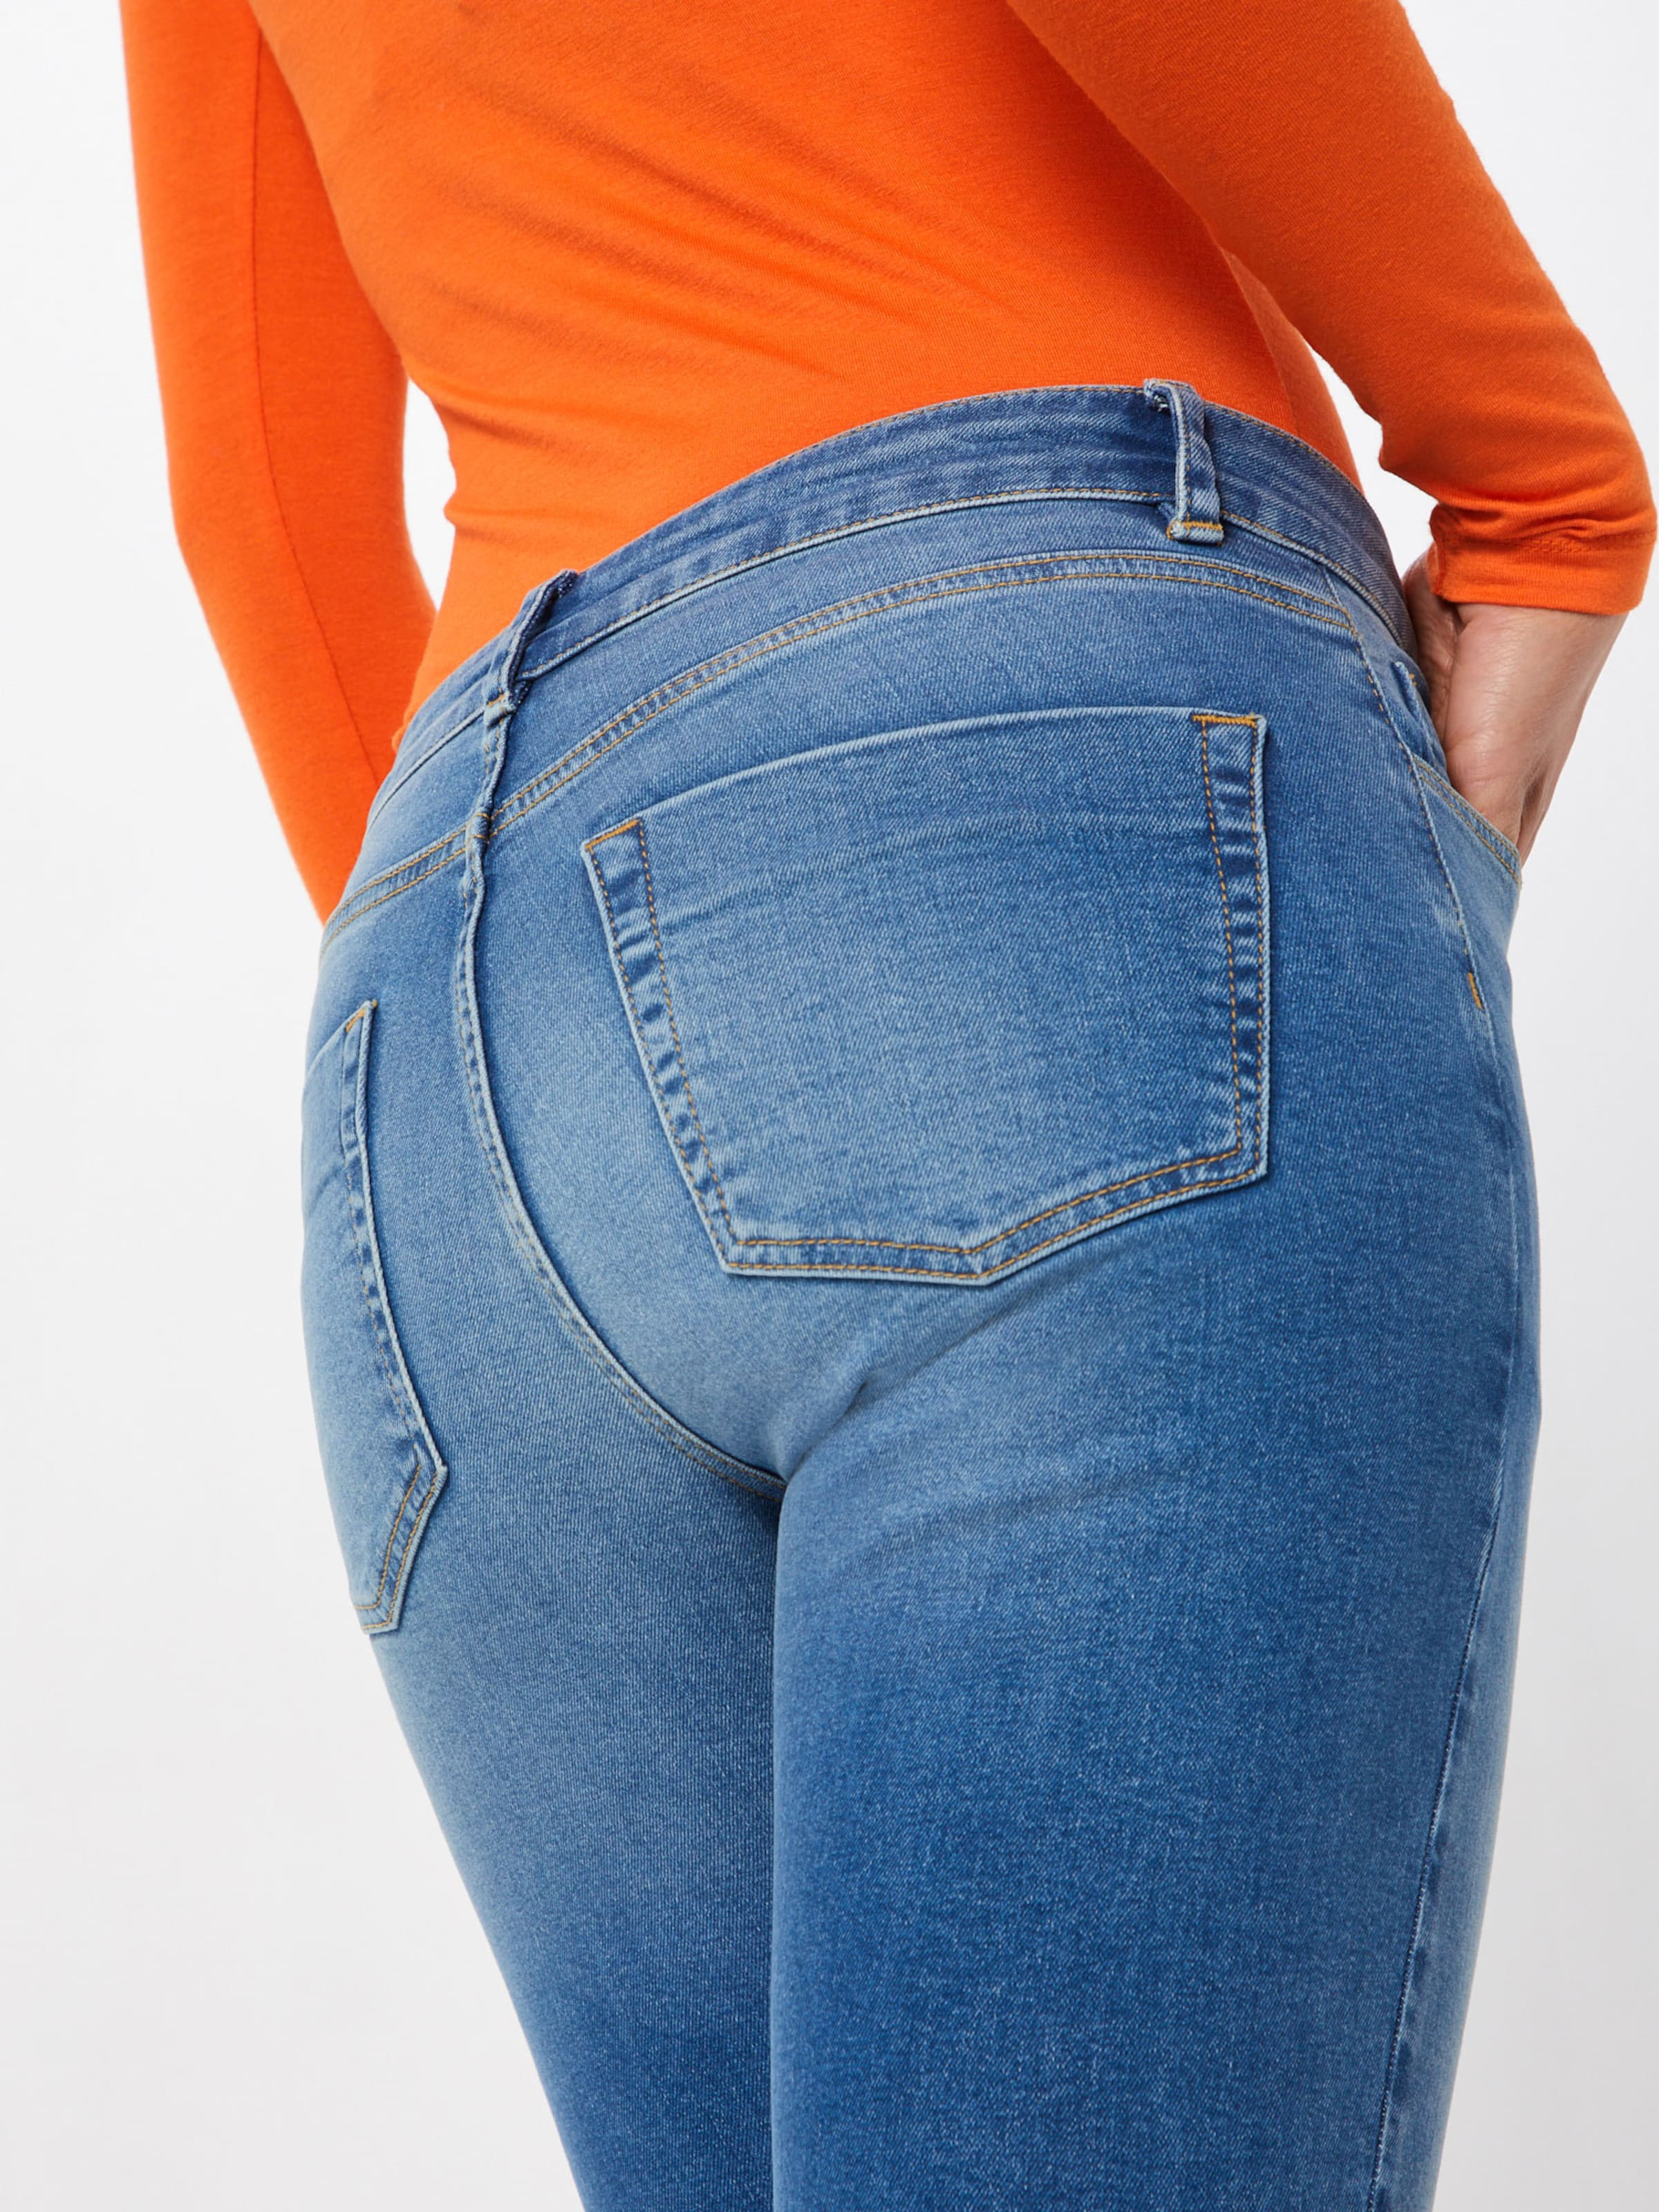 Jeans 'chiara' About In Blau You vO80Nnmw